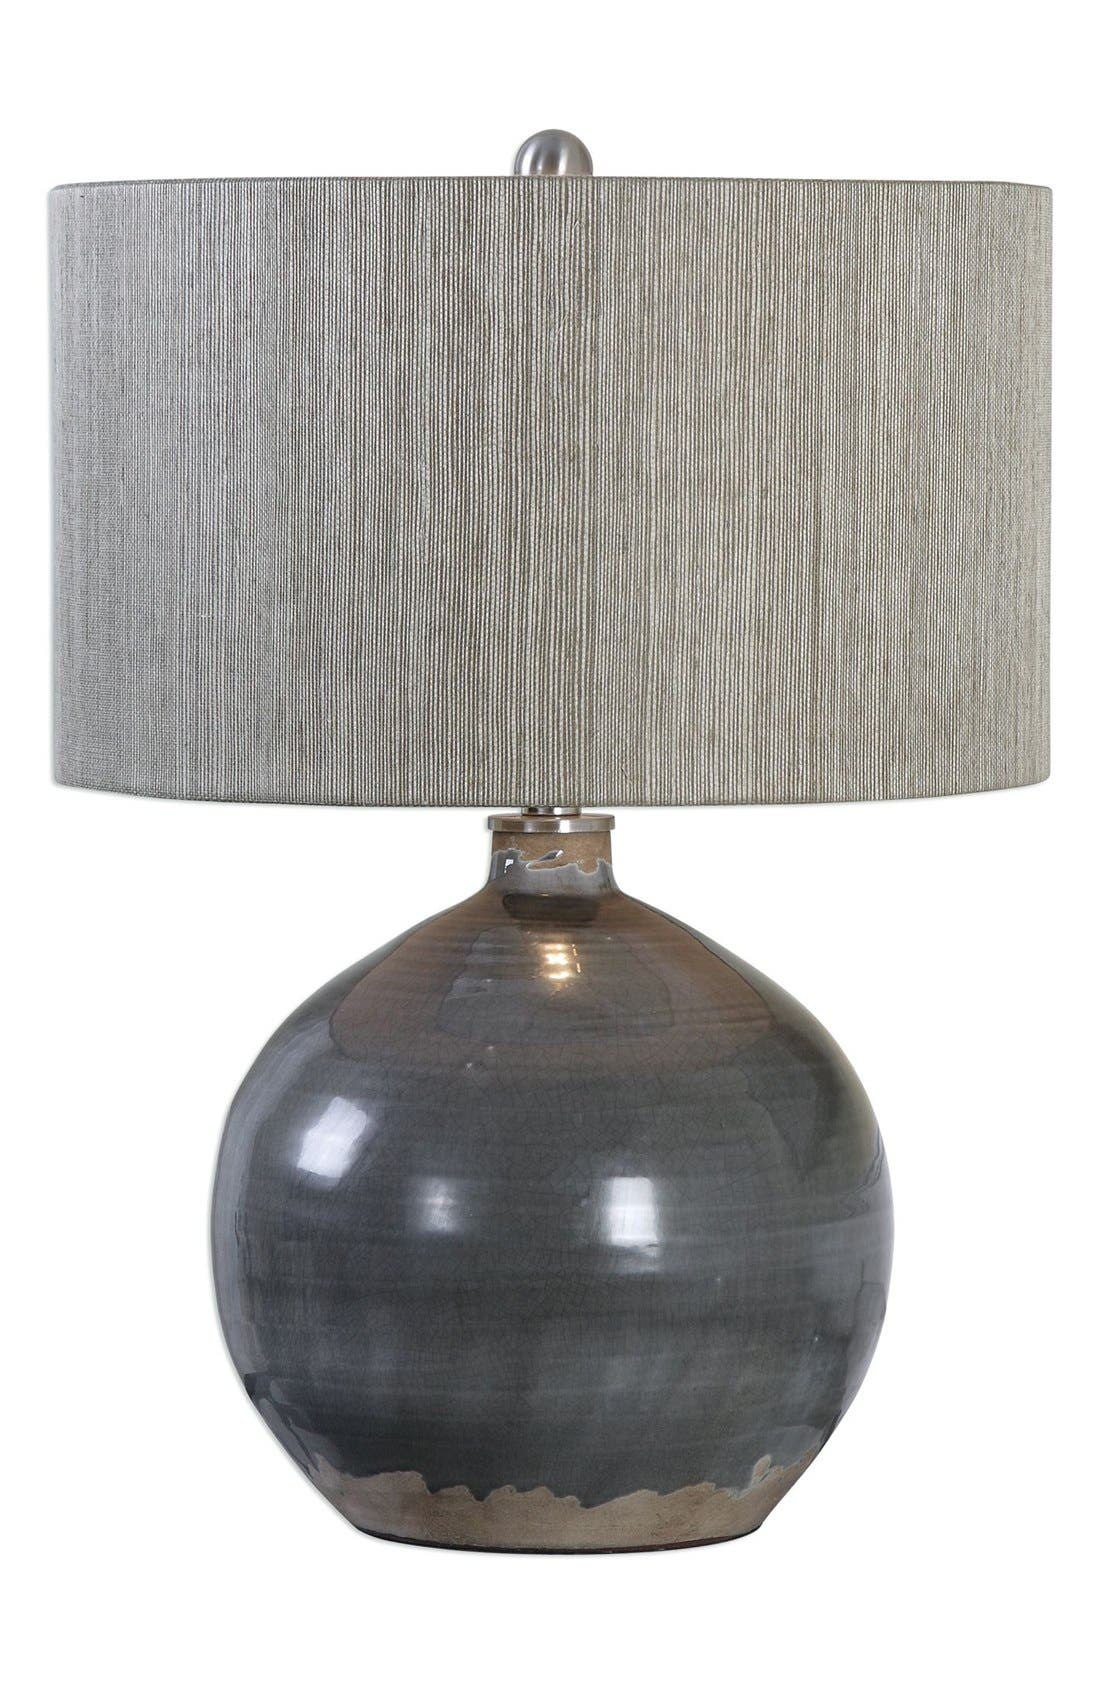 Alternate Image 1 Selected - Uttermost Ceramic Table Lamp